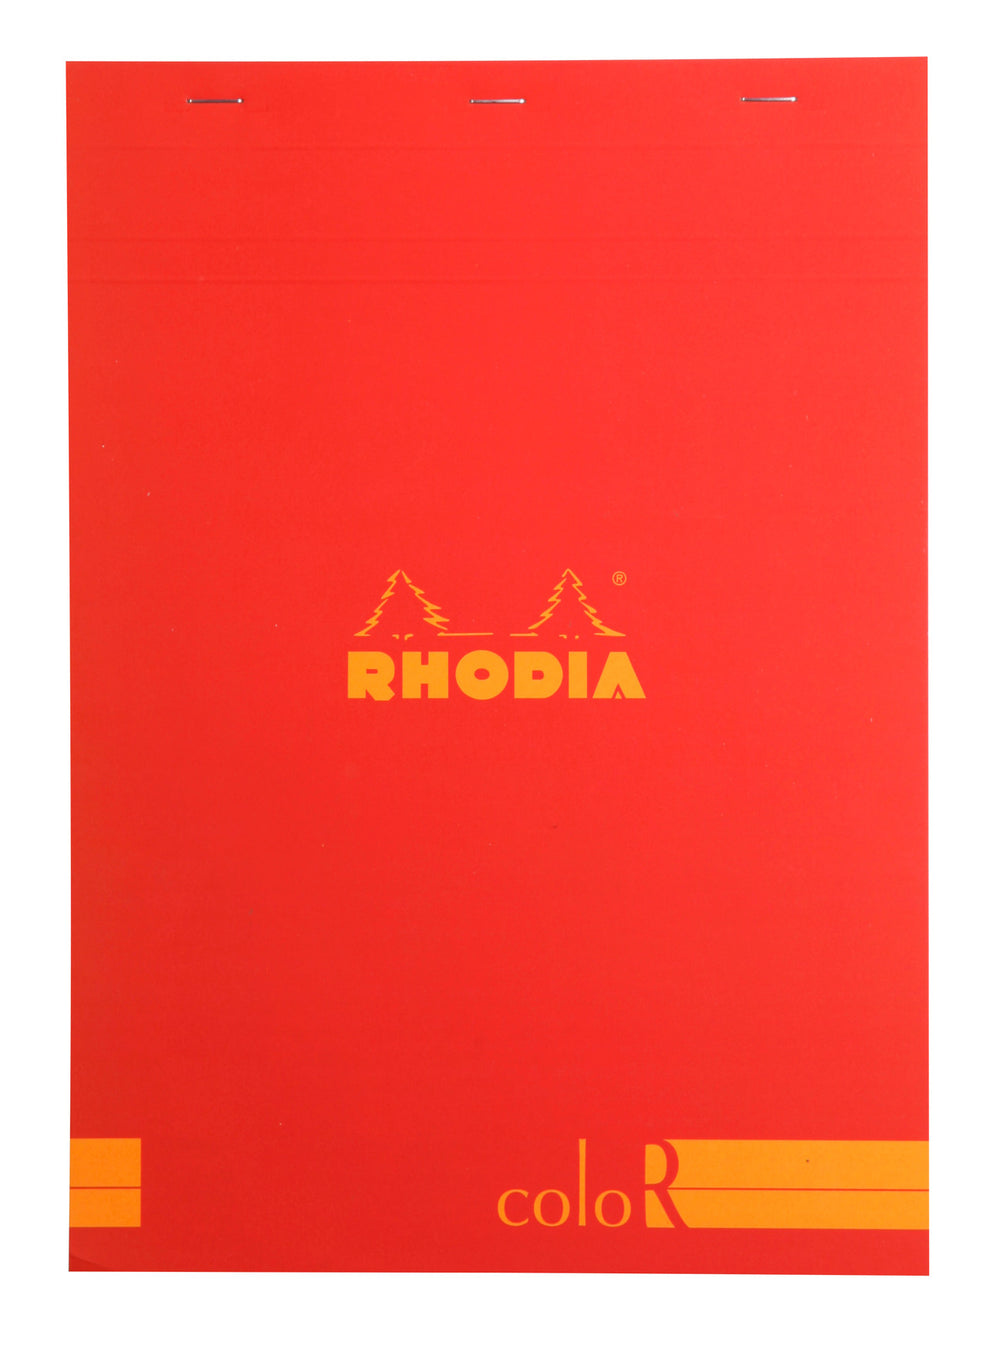 Rhodia ColoR #18 Red